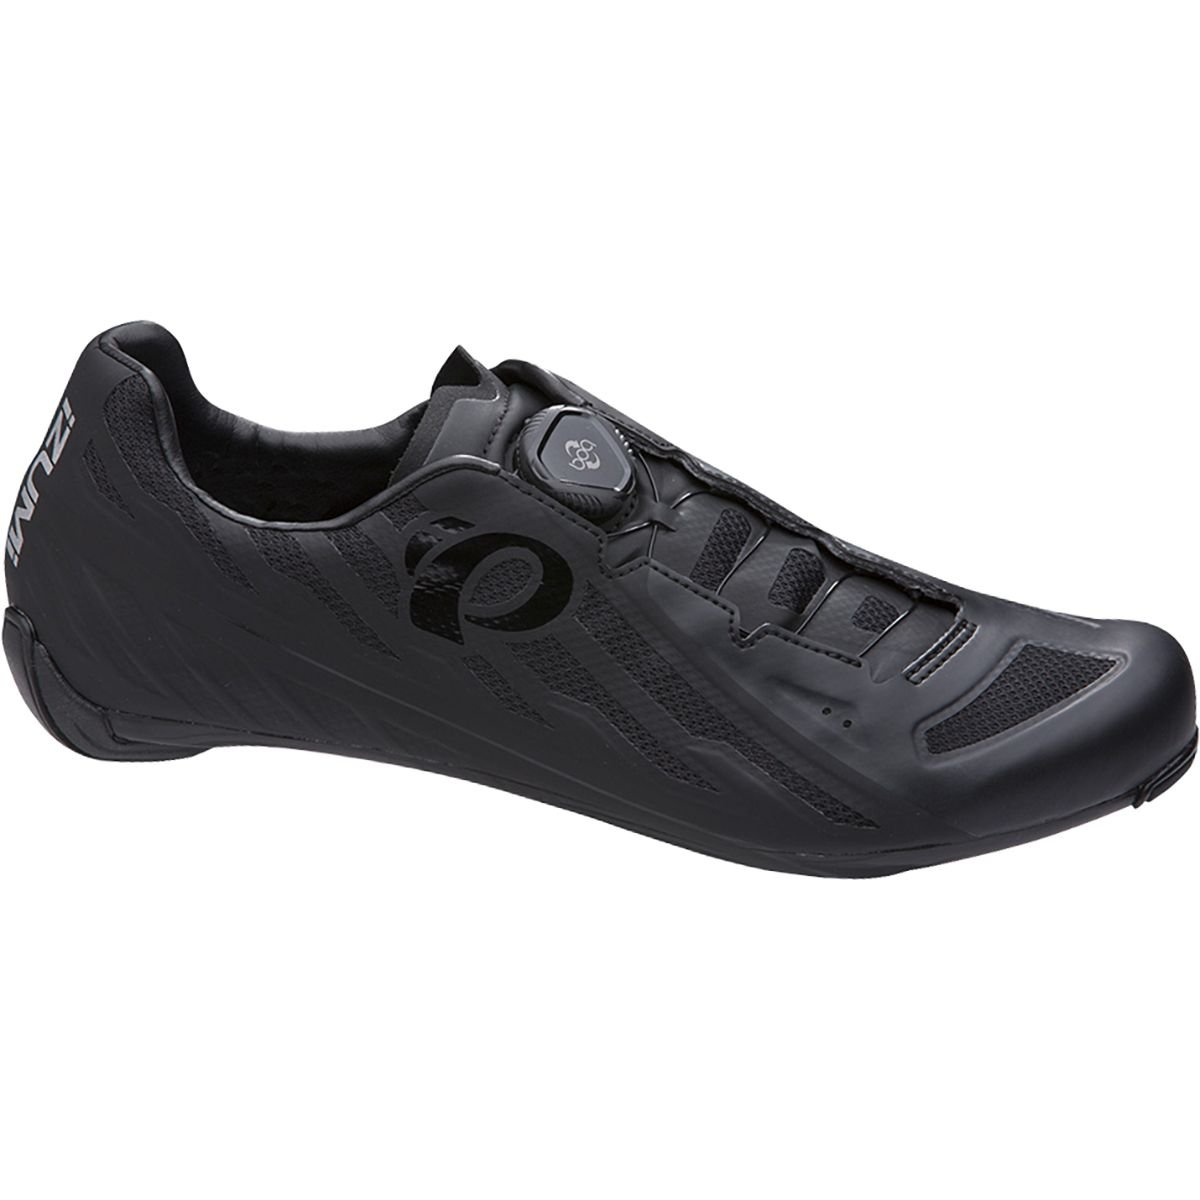 絶妙なデザイン (パールイズミ) Pearl Izumi Race Road V5 Cycling Black/Black (44.5) Shoe メンズ Pearl ロードバイクシューズBlack/Black [並行輸入品] 日本サイズ 28.5cm (44.5) Black/Black B07H5DCMFP, TechnicalSport PASSO:878f4ec1 --- by.specpricep.ru